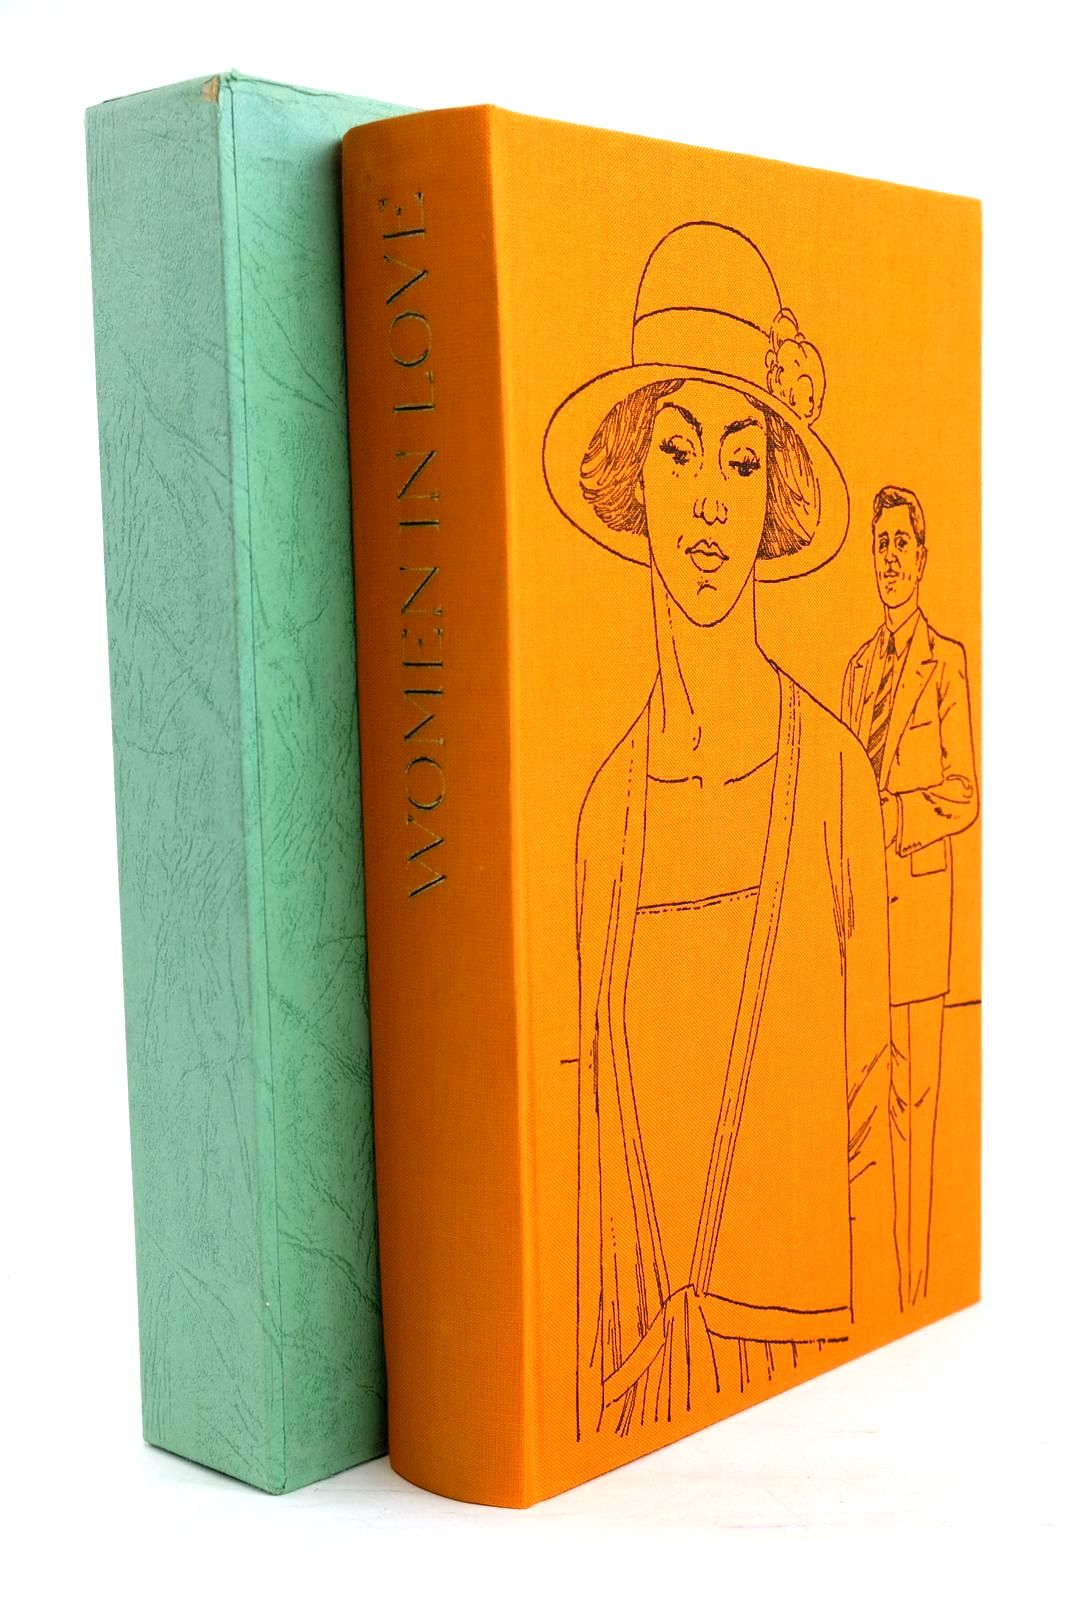 Photo of WOMEN IN LOVE written by Lawrence, D.H. illustrated by Raymond, Charles published by Folio Society (STOCK CODE: 1320537)  for sale by Stella & Rose's Books